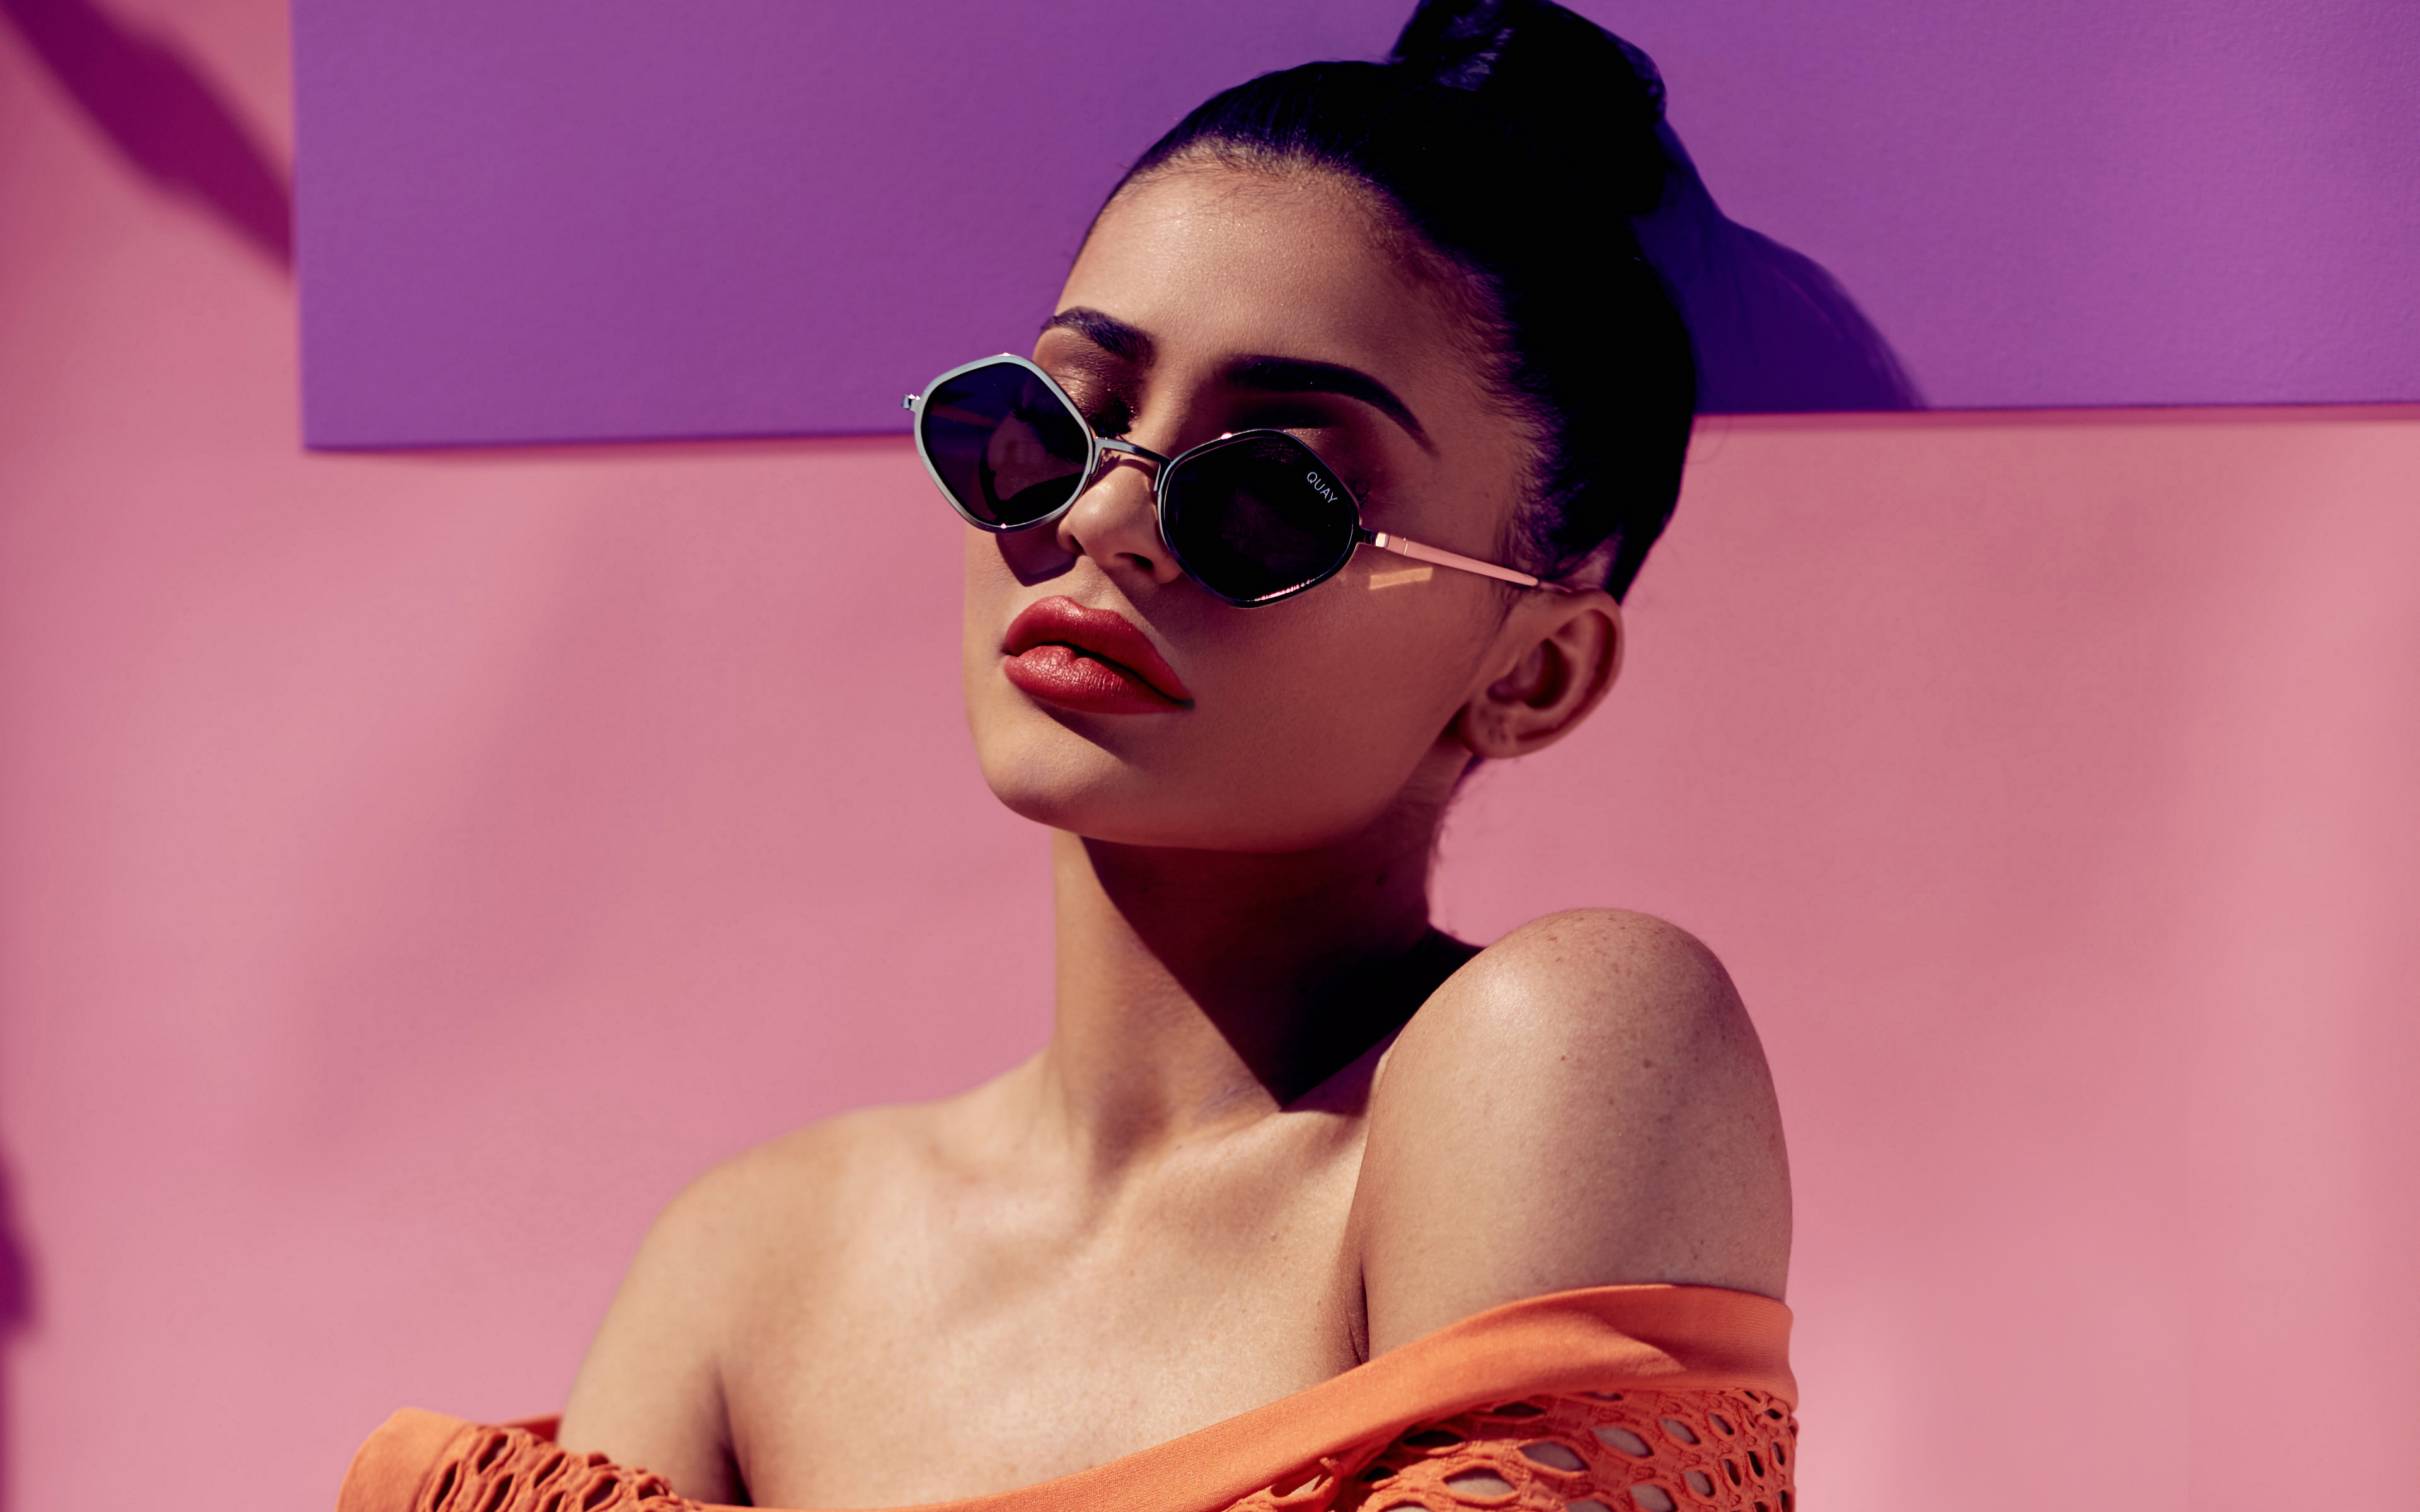 Kylie Jenner Purple Honey Sunglasses 4K Wallpapers